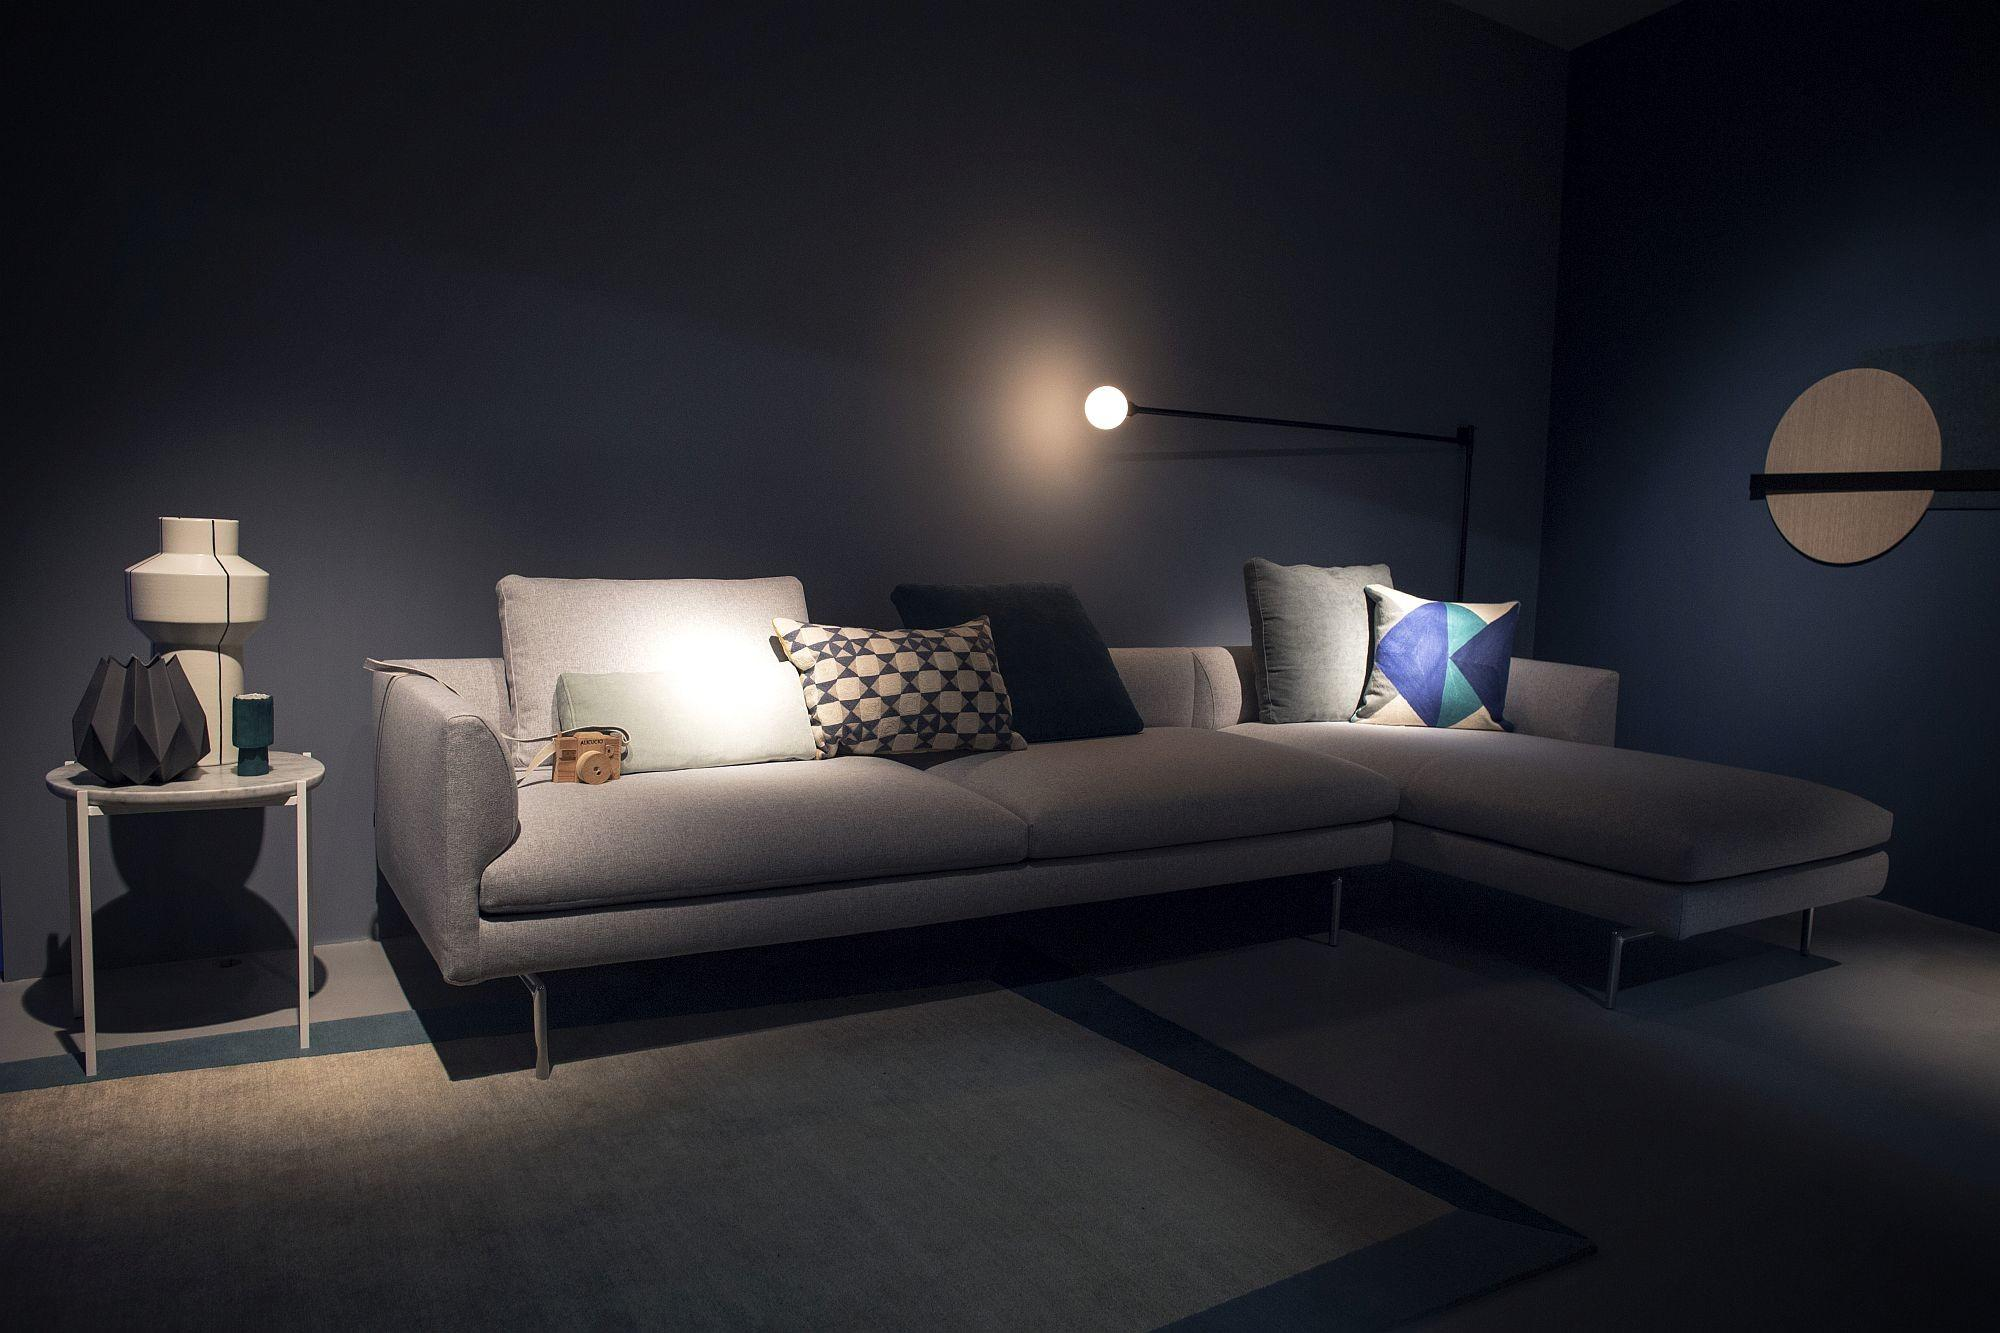 Minimal Space Savvy Contemporary Floor Lamp Finds